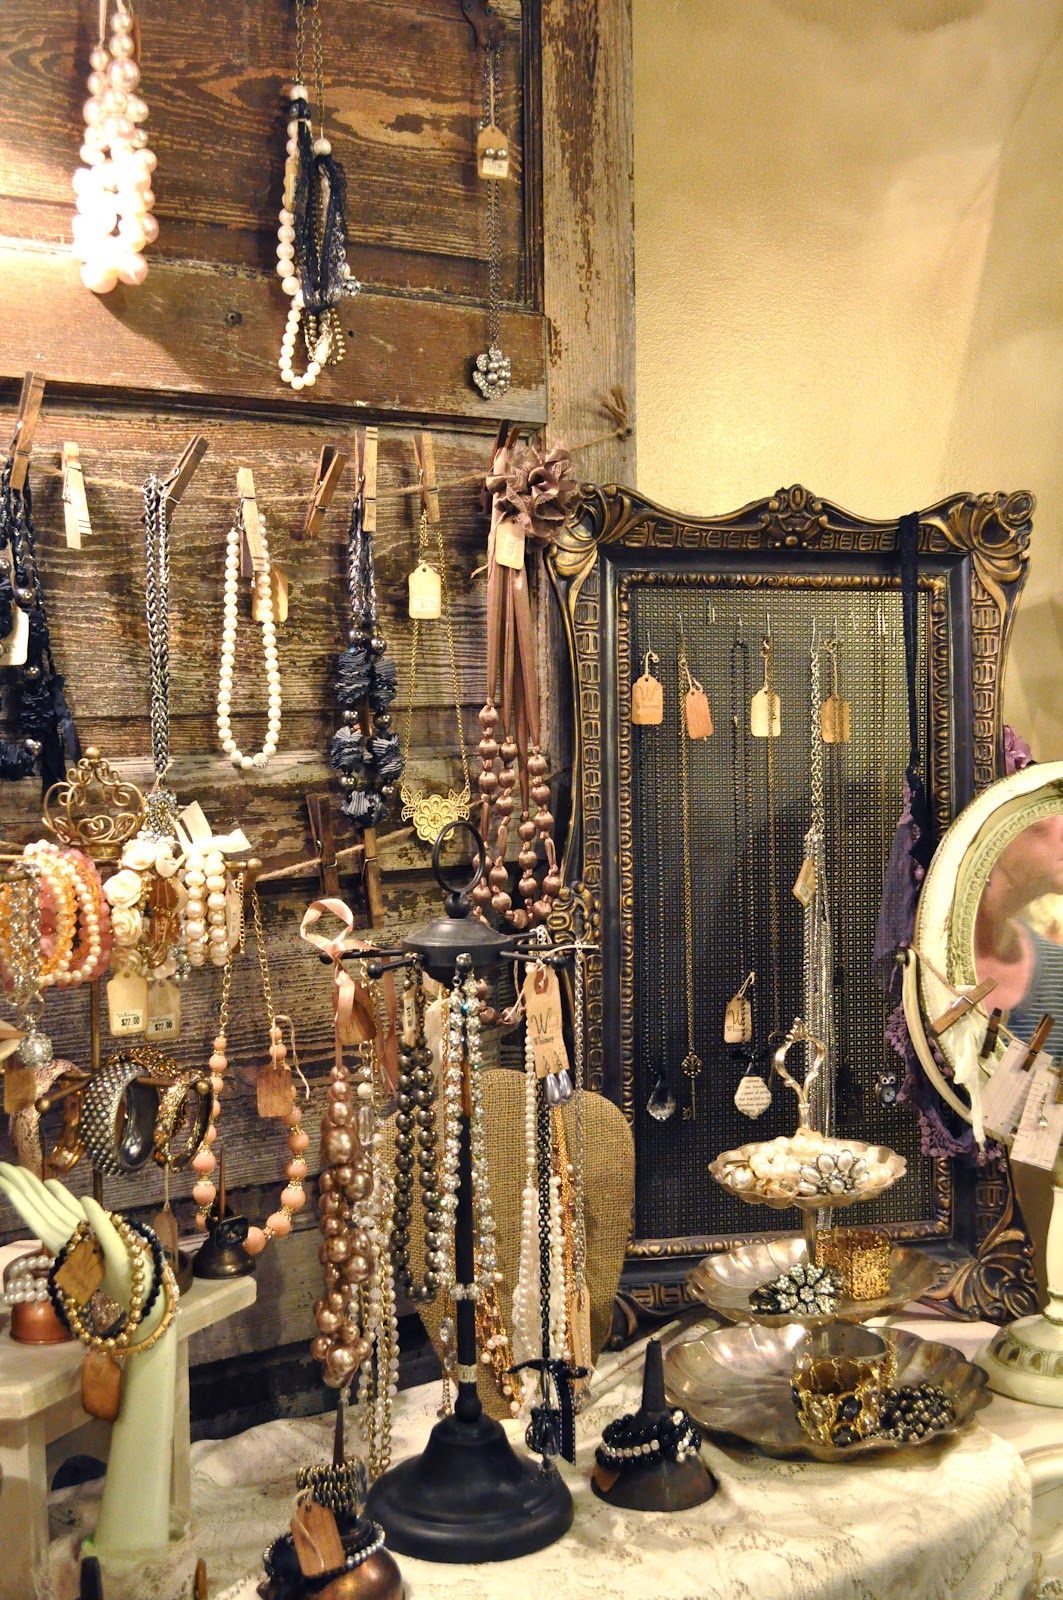 Rustic themed jewelry display, with jewelry hanged on a door like wood piece, on a rope with clothes hangers, on a photo frame and other display pieces.